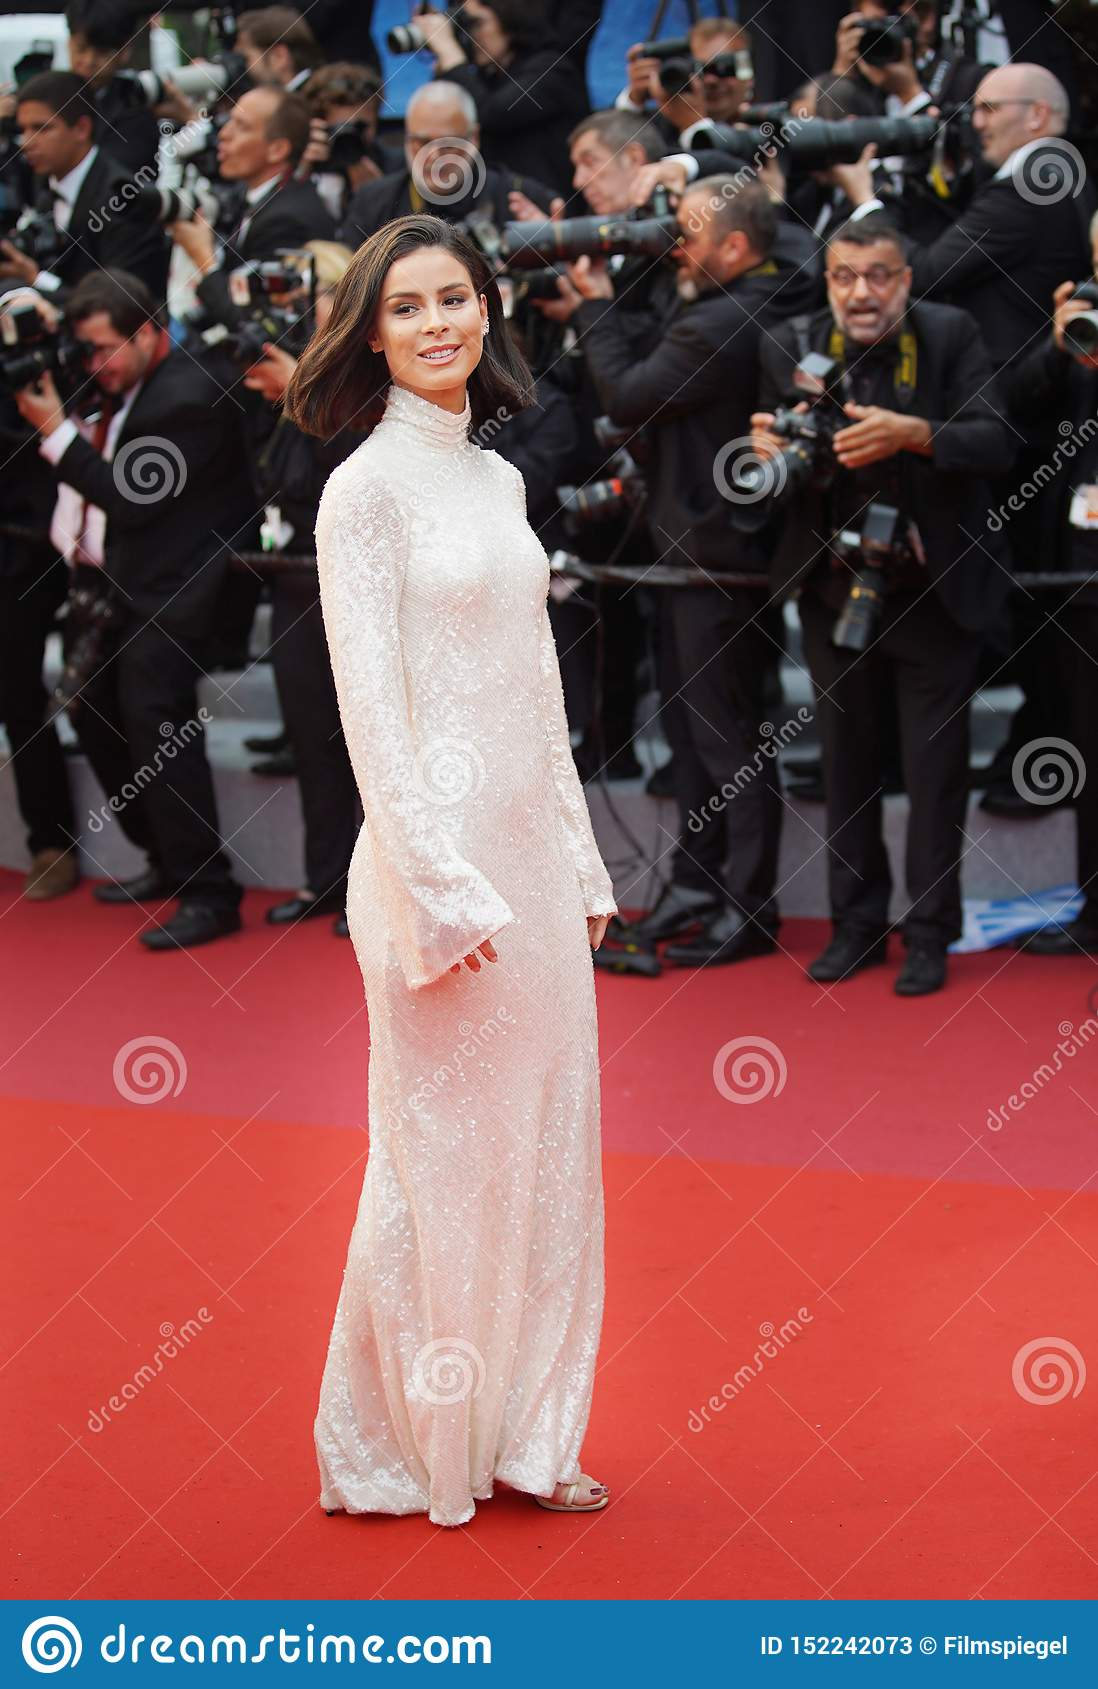 Lena Meyer Landrut At The Gala Premiere Editorial Stock Photo Image Of Premiere Celebrity 152242073